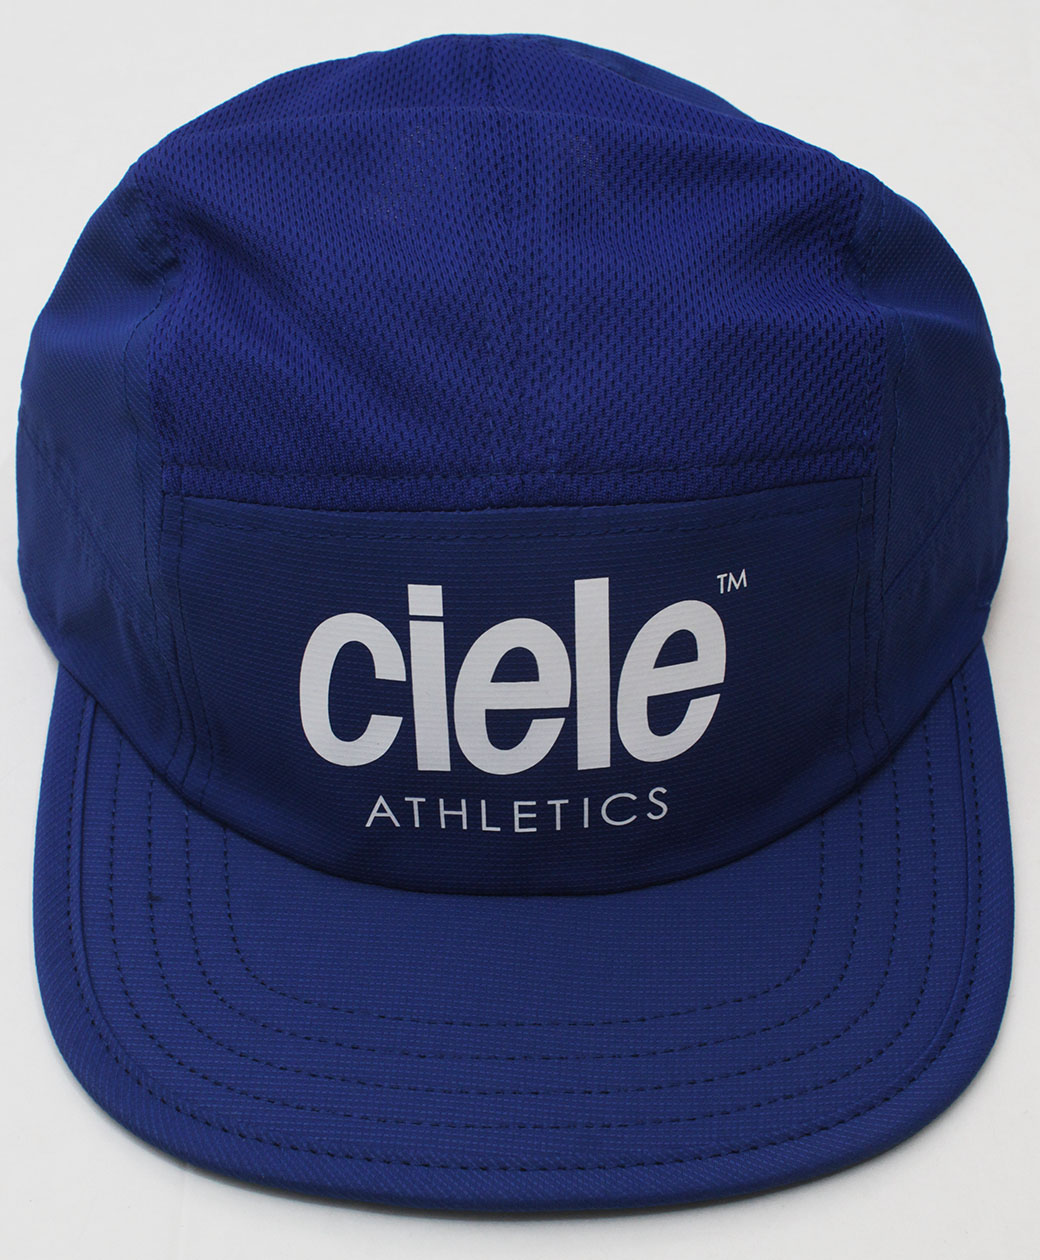 Ciele Athletics GOCap Athletics Indigo